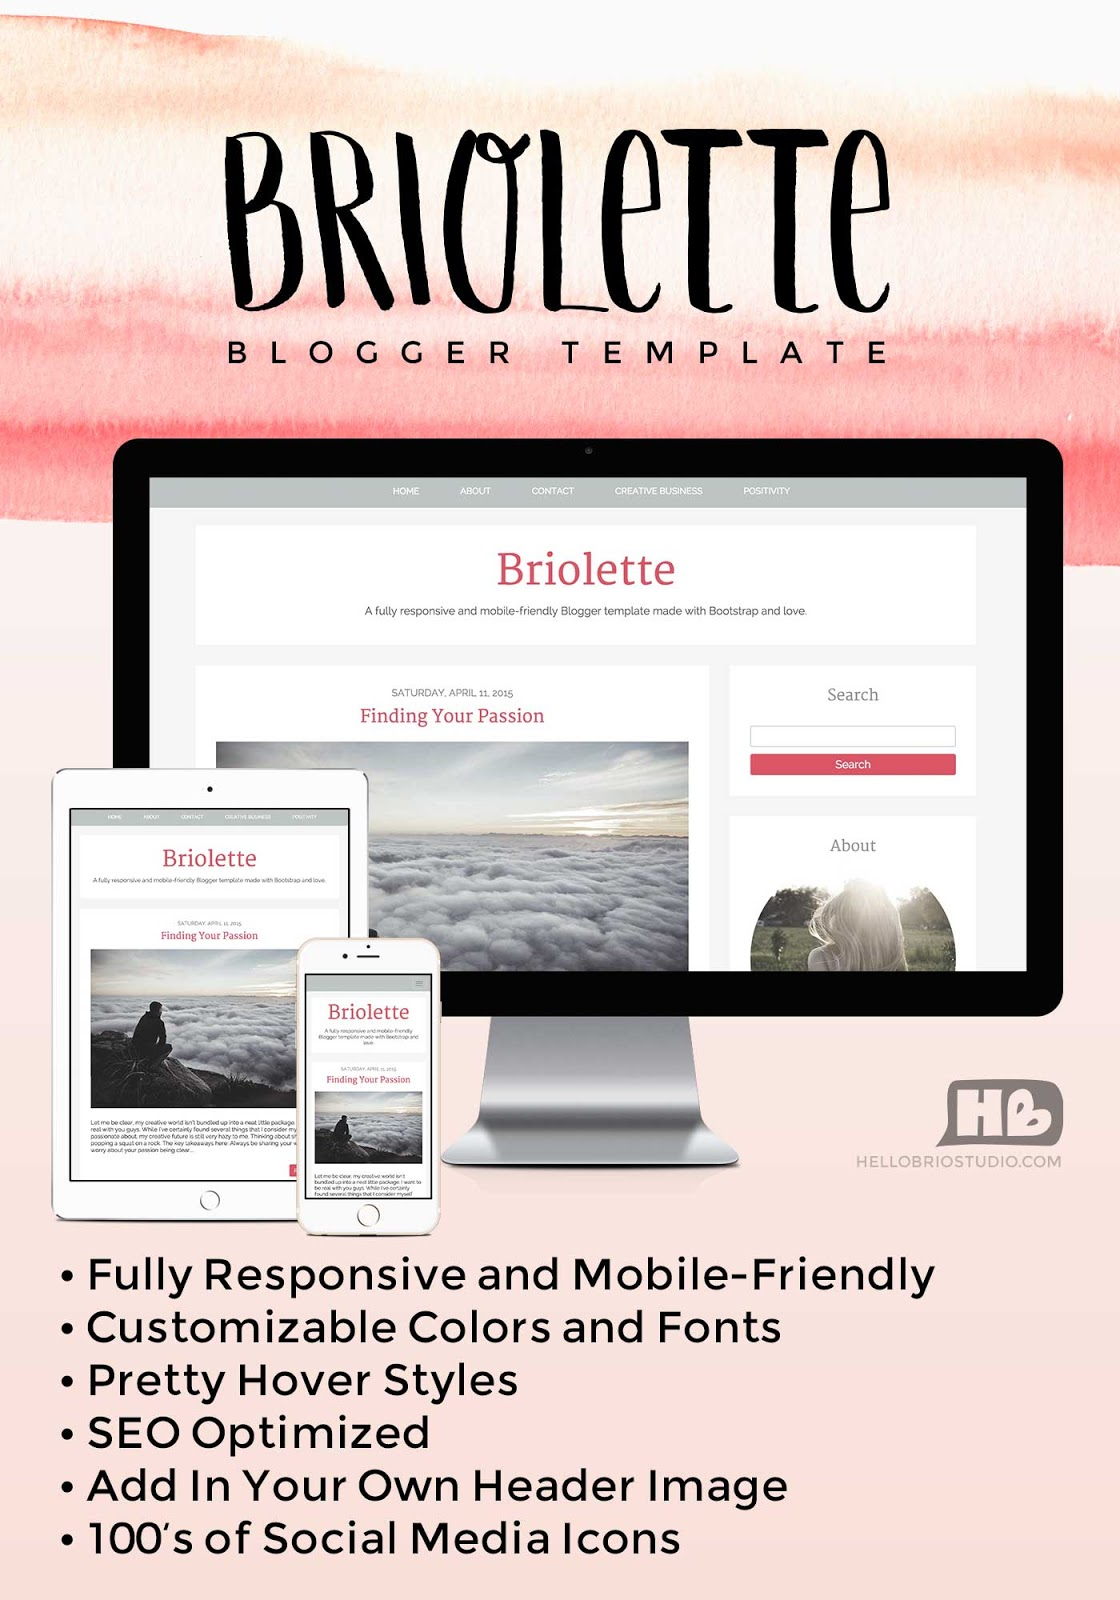 Briolette Blogger Template - Responsive and Customizable design built by Jennifer Coyle at Hello Brio Studio available for purchase on Creative Market and Etsy